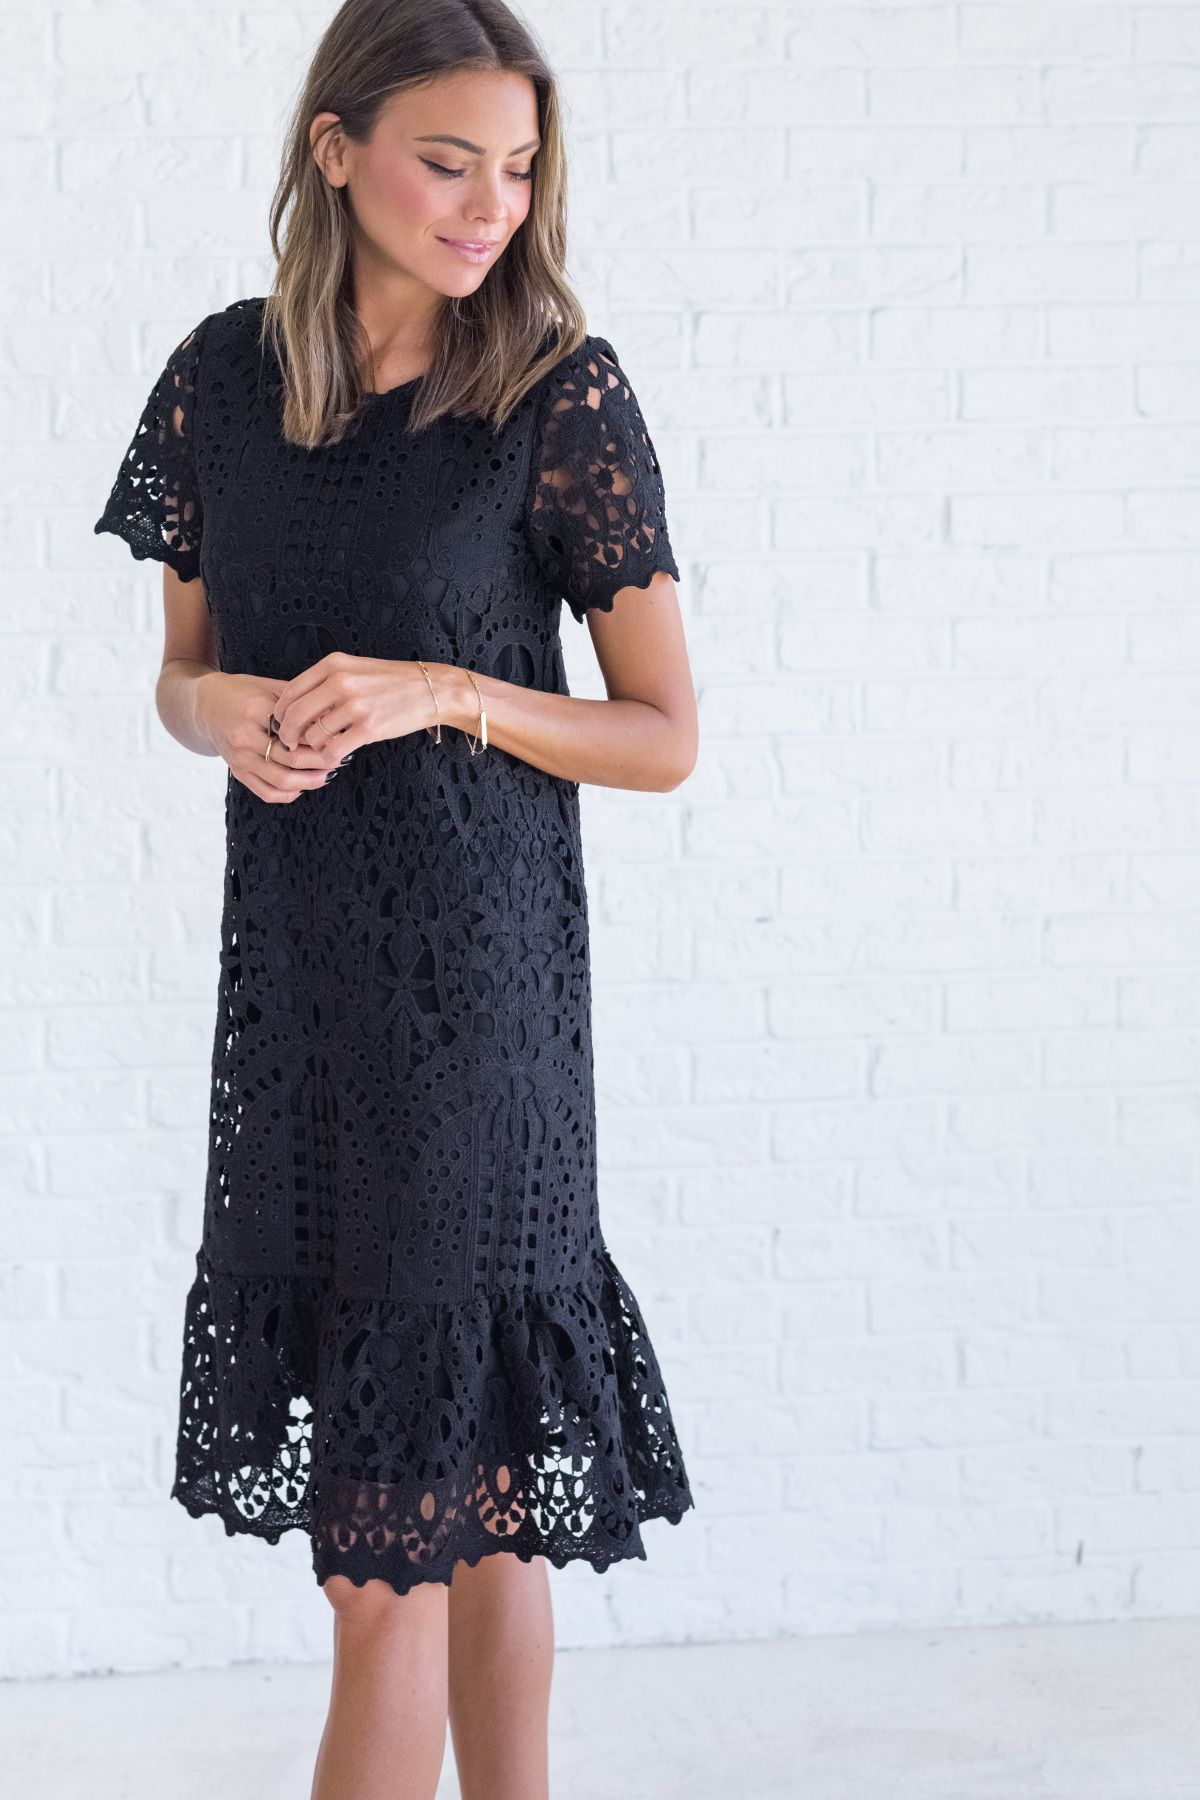 Unconditional Love Black Lace Dress Black Lace Dress Fall Dress Outfit Lace Dress Black